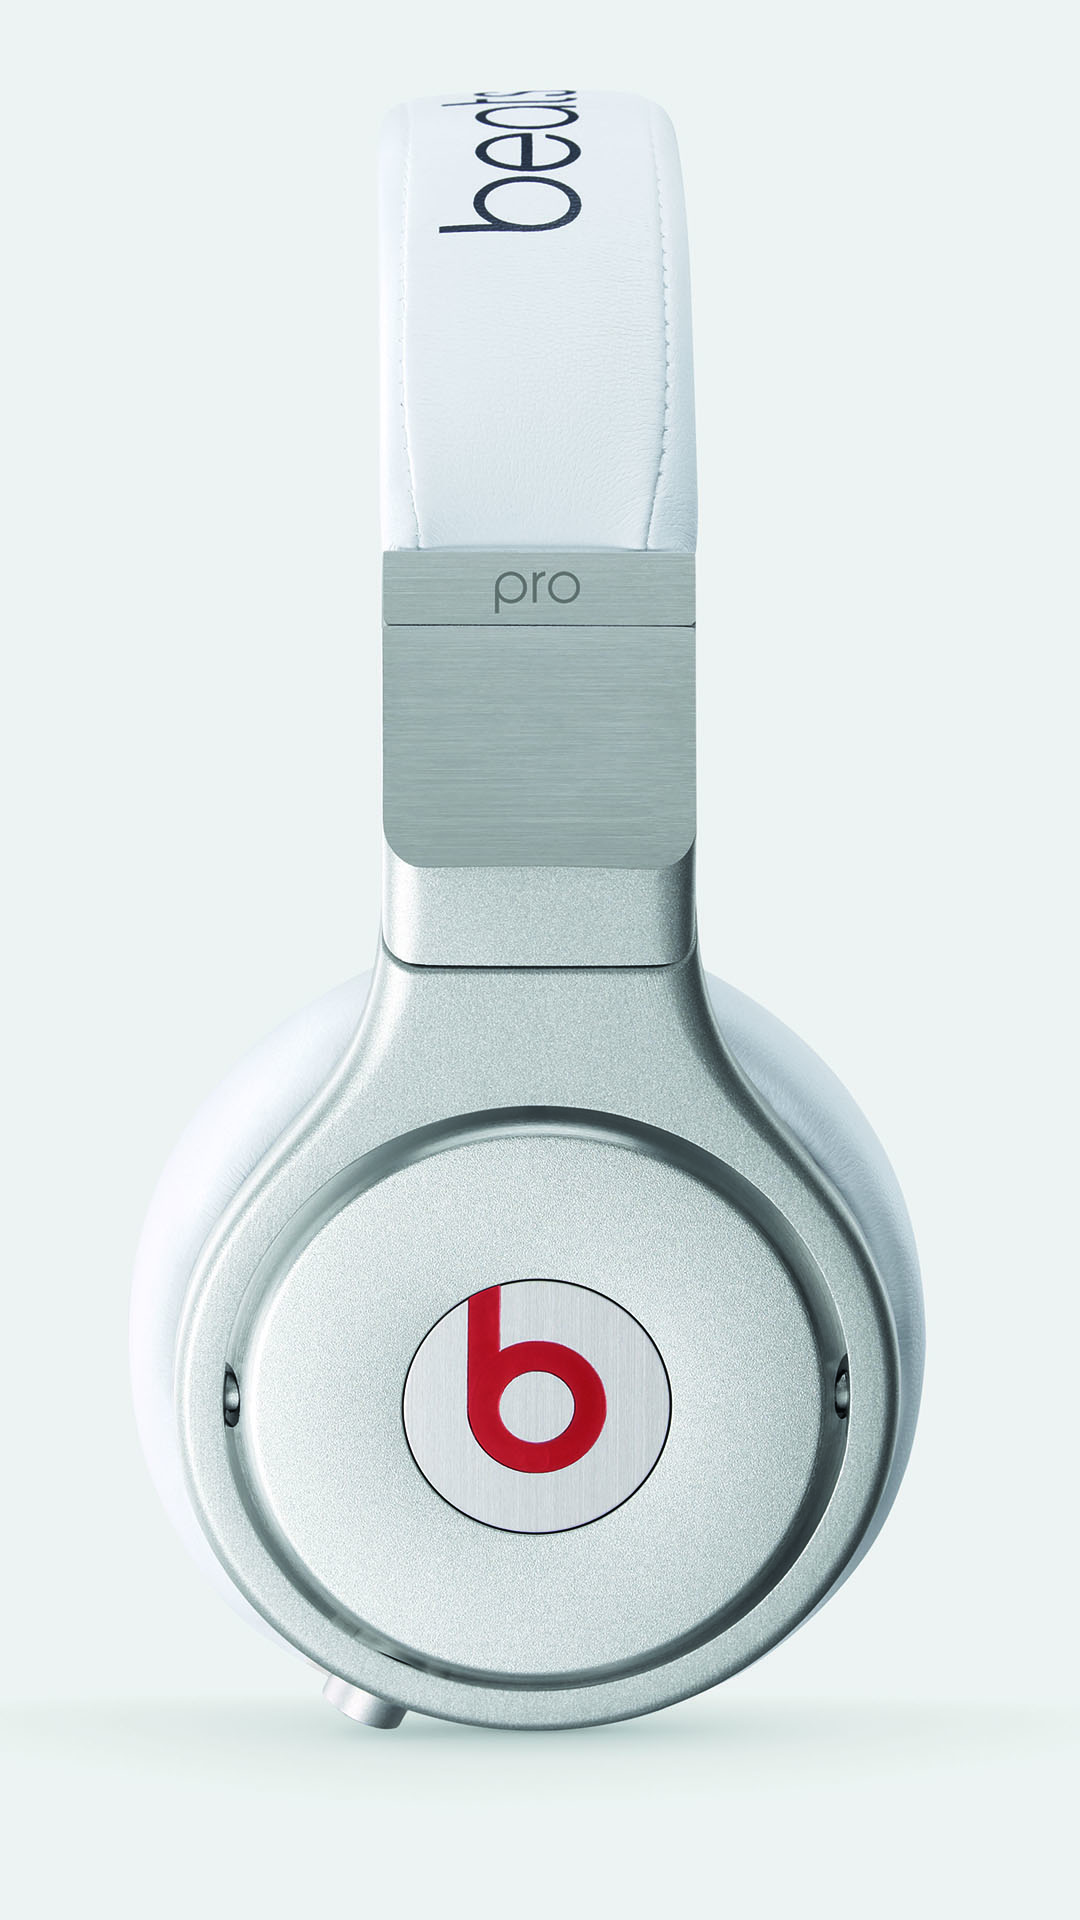 Beats audio htc one wallpaper